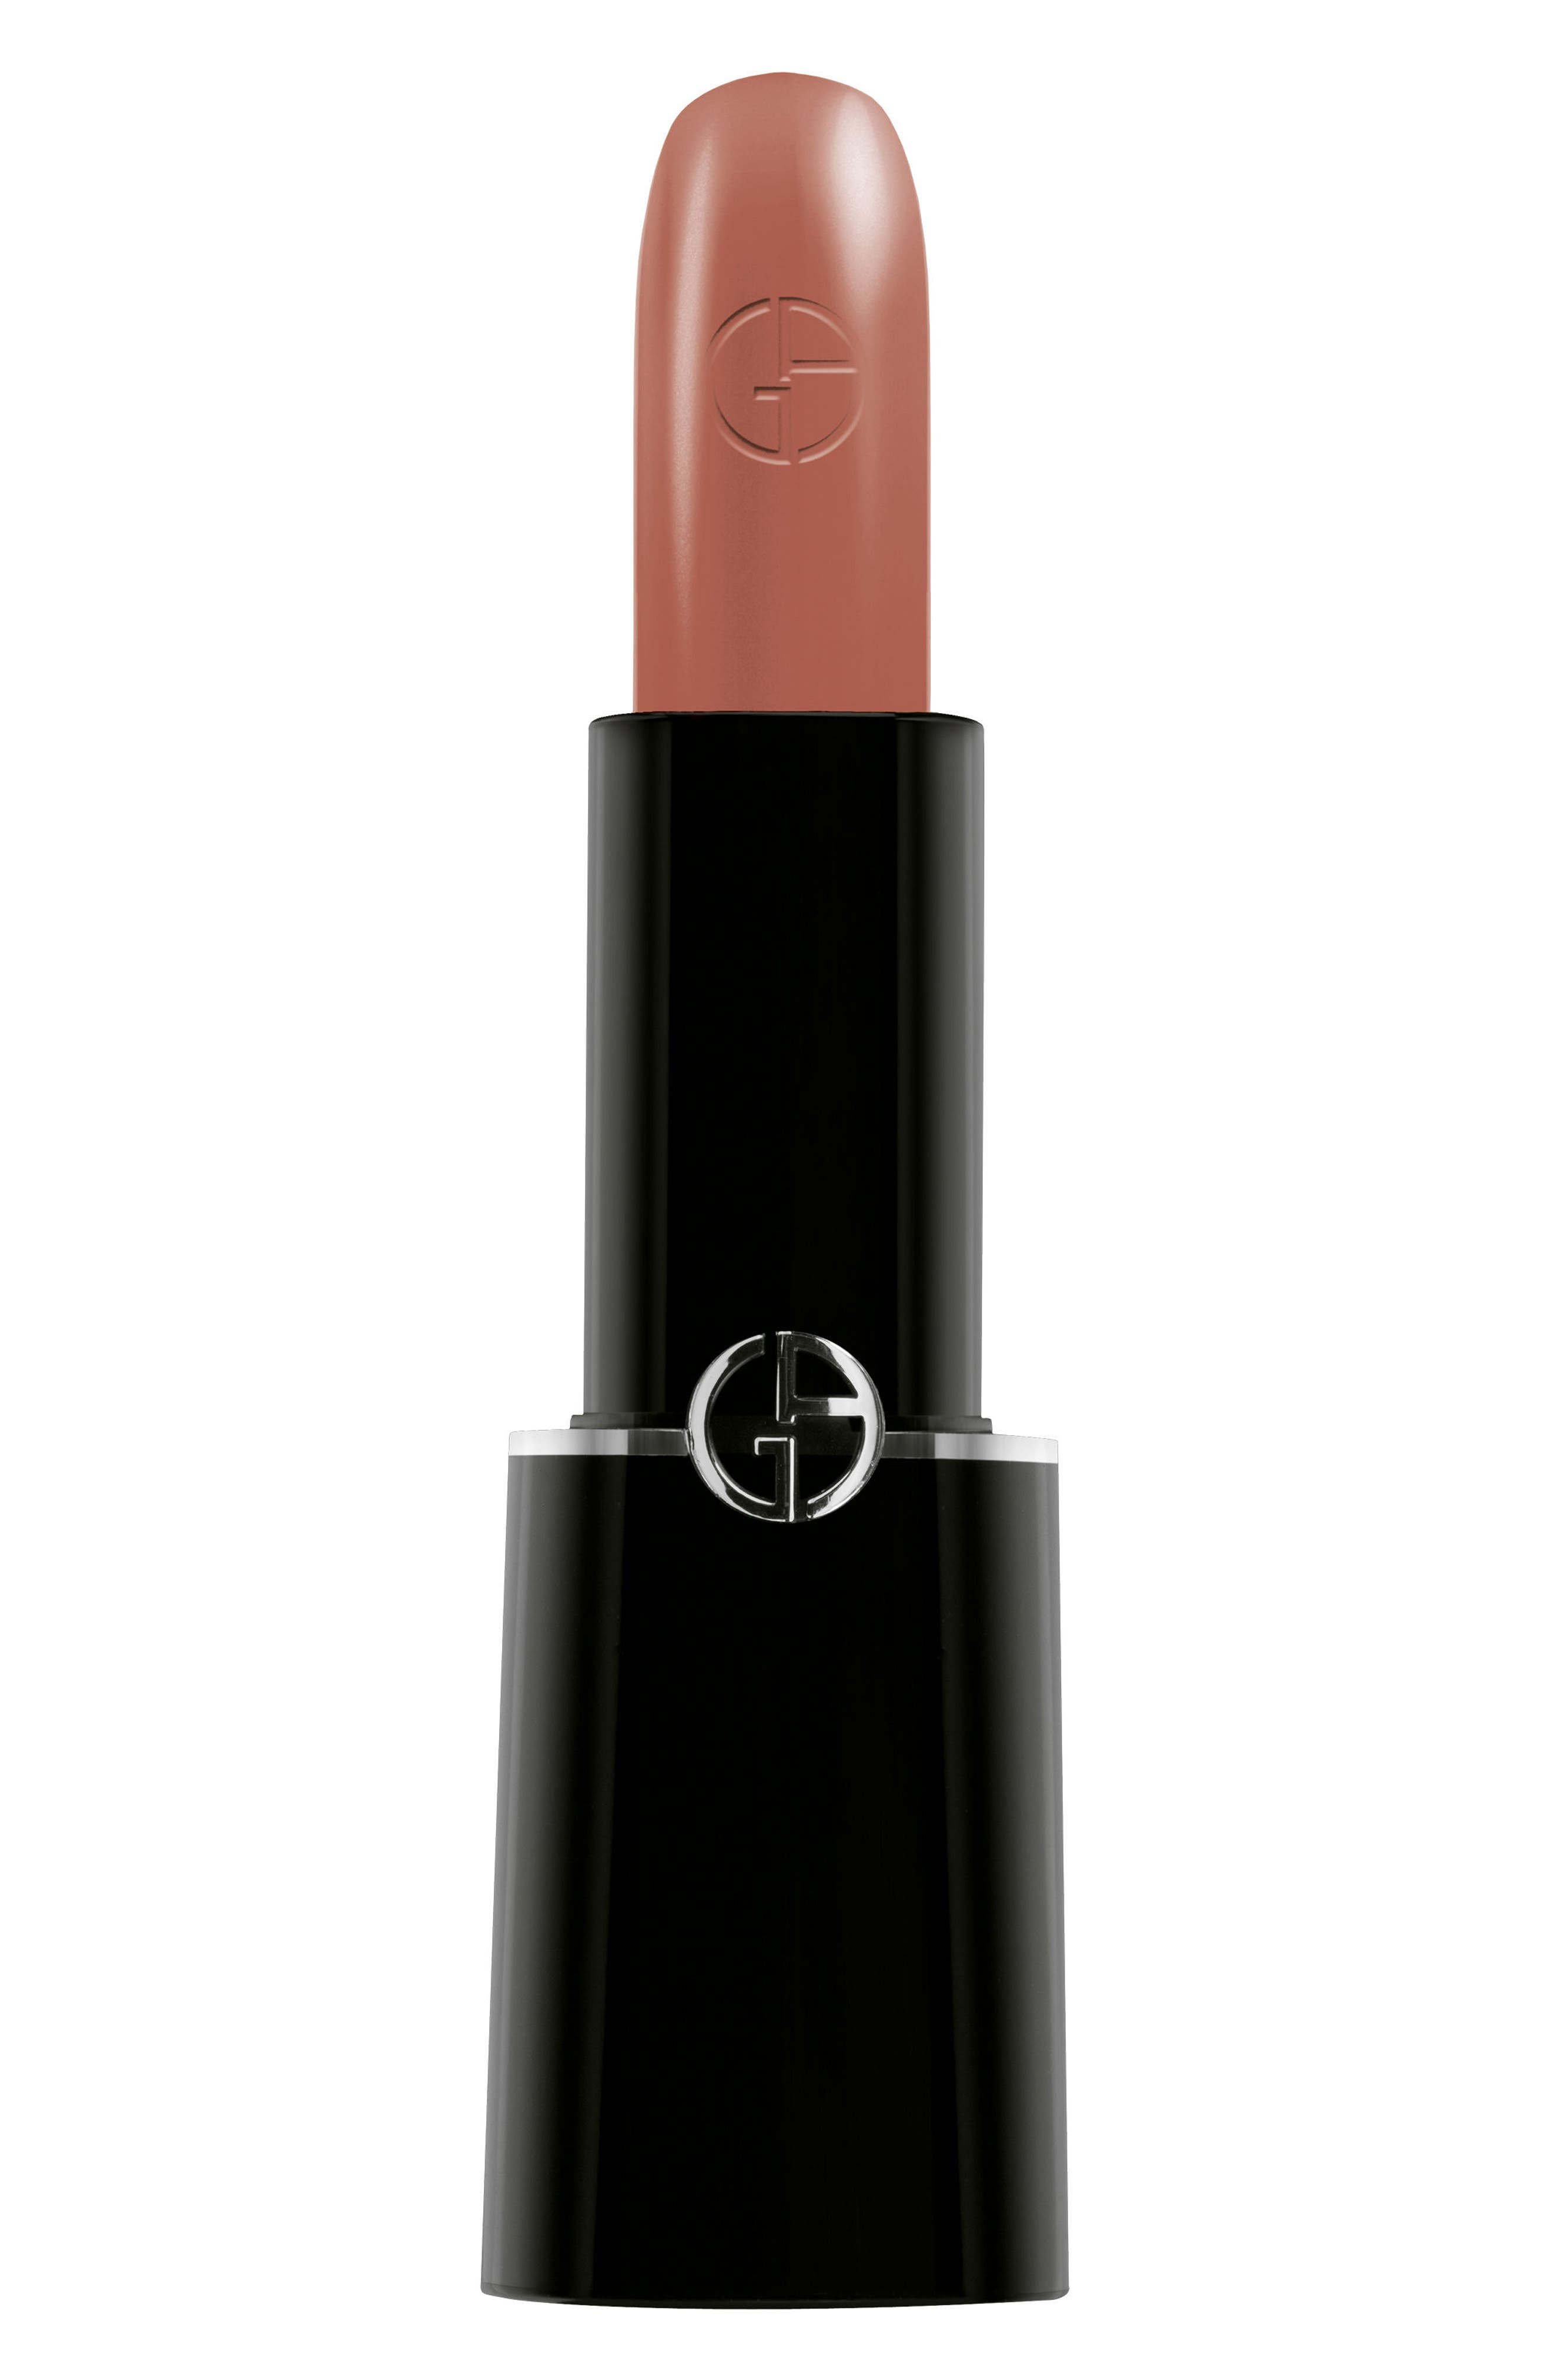 Giorgio Armani Front Row Rouge Sheer Lipstick (Nordstrom Exclusive)